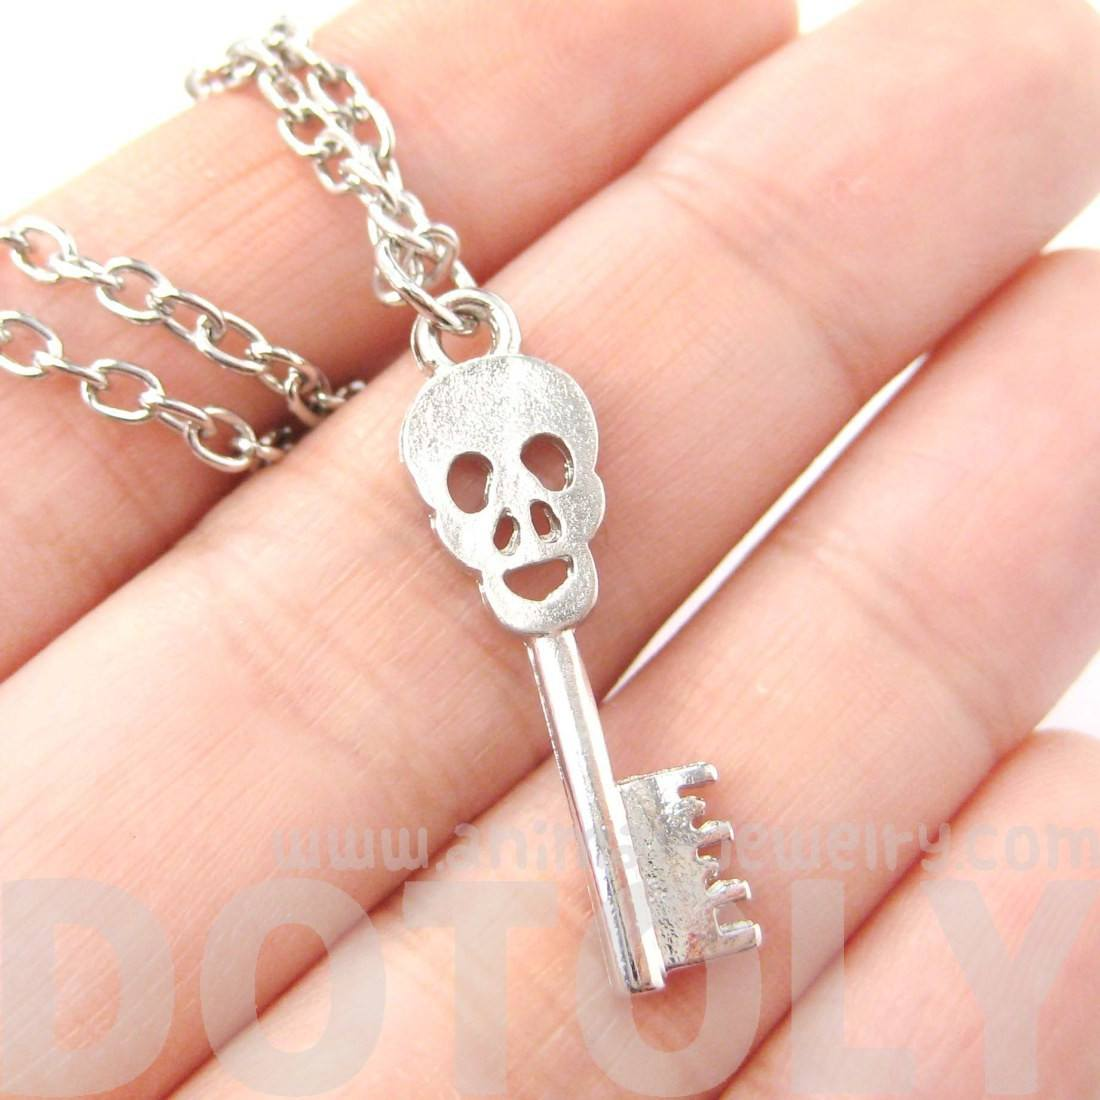 Unique Skeleton Skull Shaped Key Pendant Necklace in Silver | DOTOLY